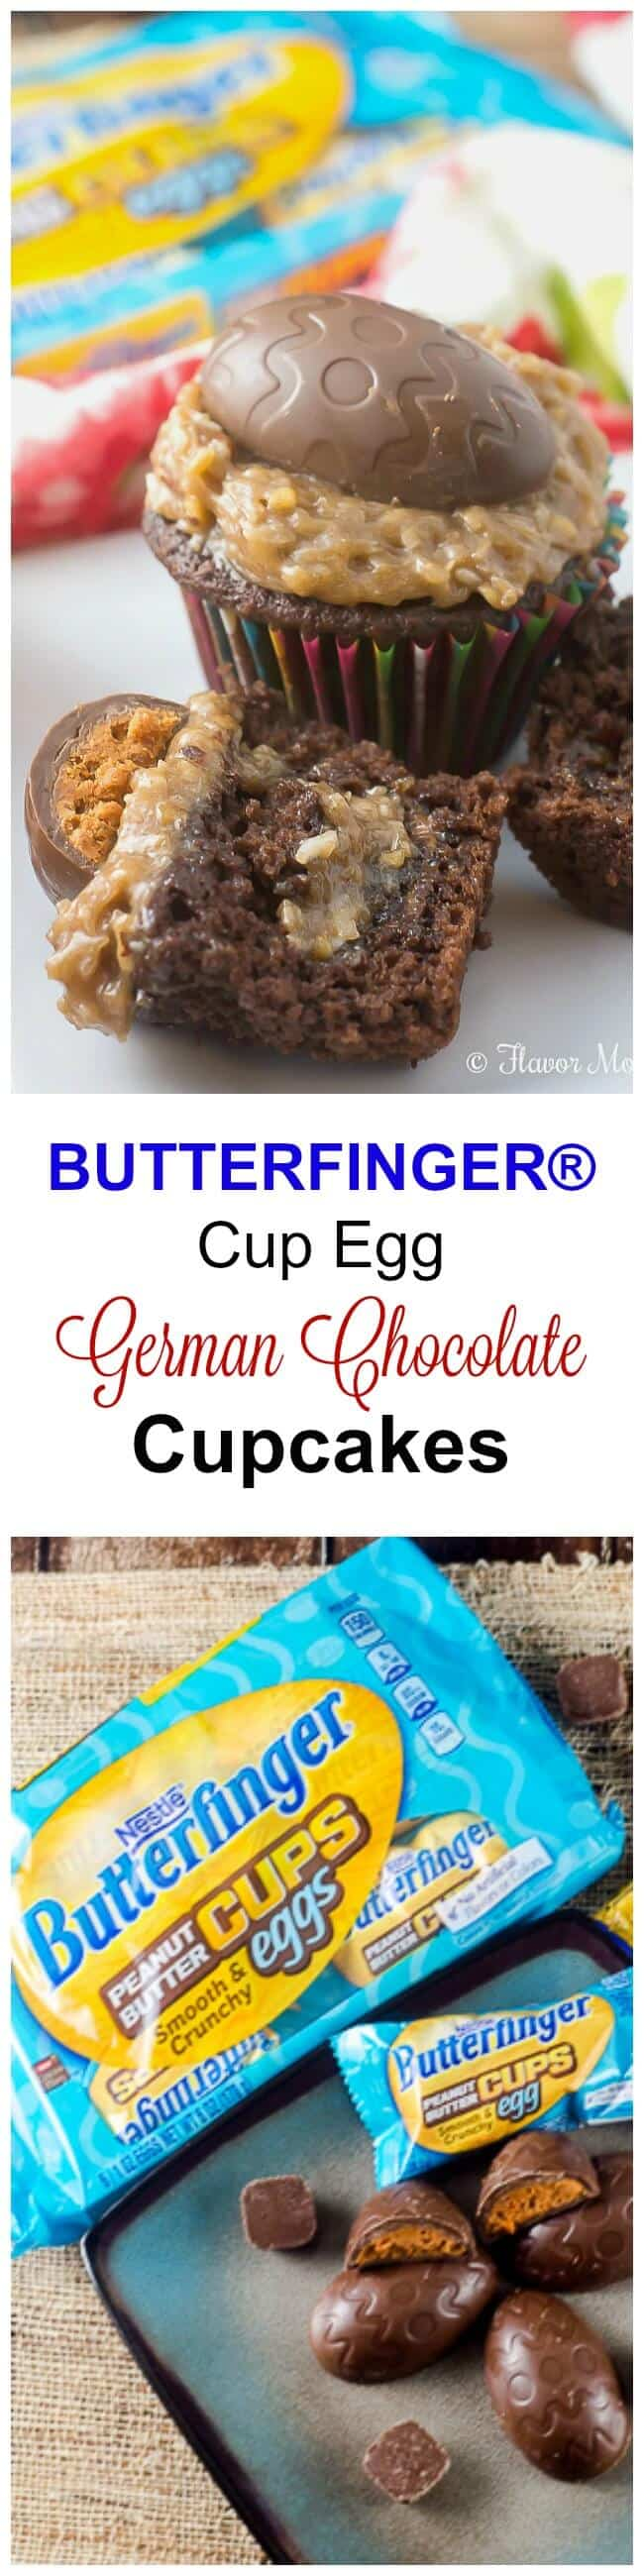 #EggcellentTreats #CollectiveBias BUTTERFINGER® Cup Egg German Chocolate Cupcakes are fun sweet treats for Easter that are easy to make, and that the whole family will love! Each German Chocolate Cupcake is topped with a sweet BUTTERFINGER® Cup Egg, with a smooth and crunchy peanut butter filling and the smooth and creamy milk chocolate shell, and stuffed with BUTTERFINGER® Minis for more Easter chocolate fun! @butterfinger #EggcellentTreats #ad